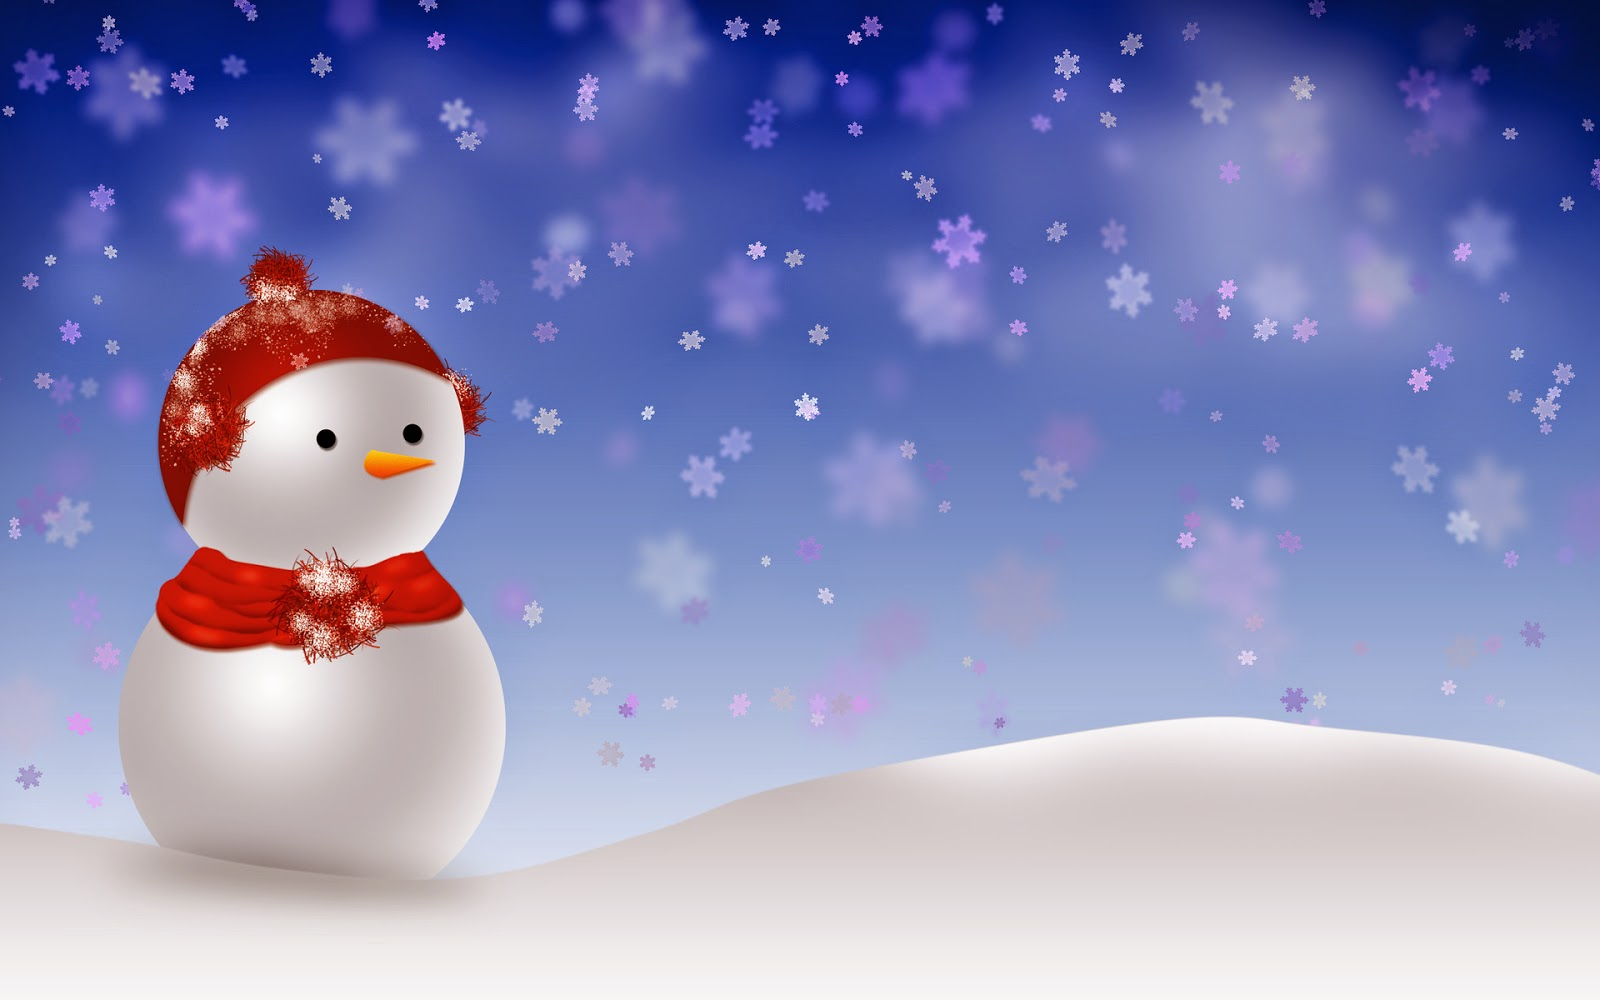 Snowman-design-template-with-snowflake-background-free-download.jpg